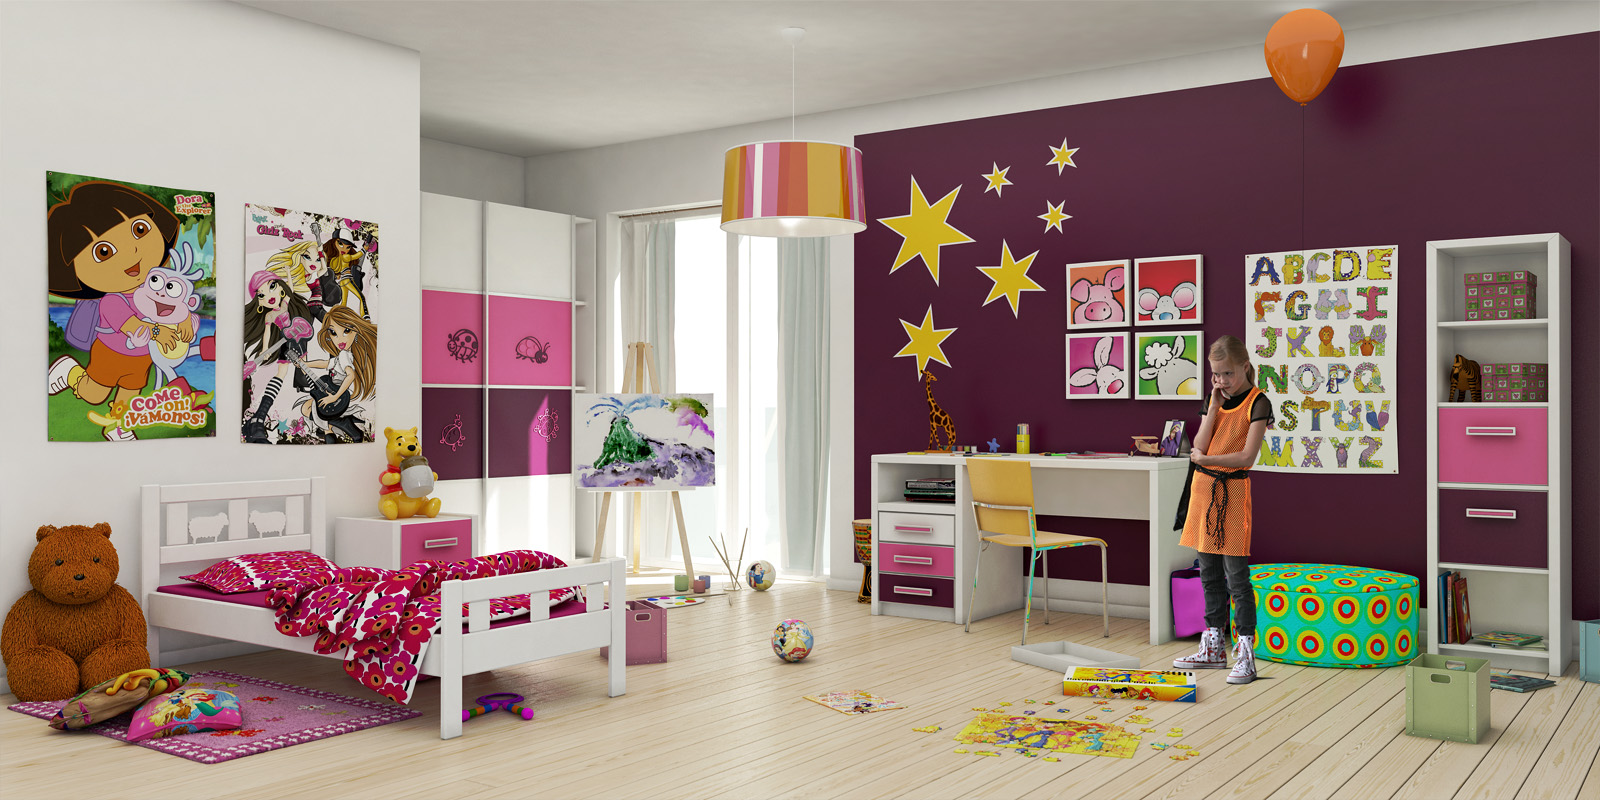 das kinderzimmer. Black Bedroom Furniture Sets. Home Design Ideas